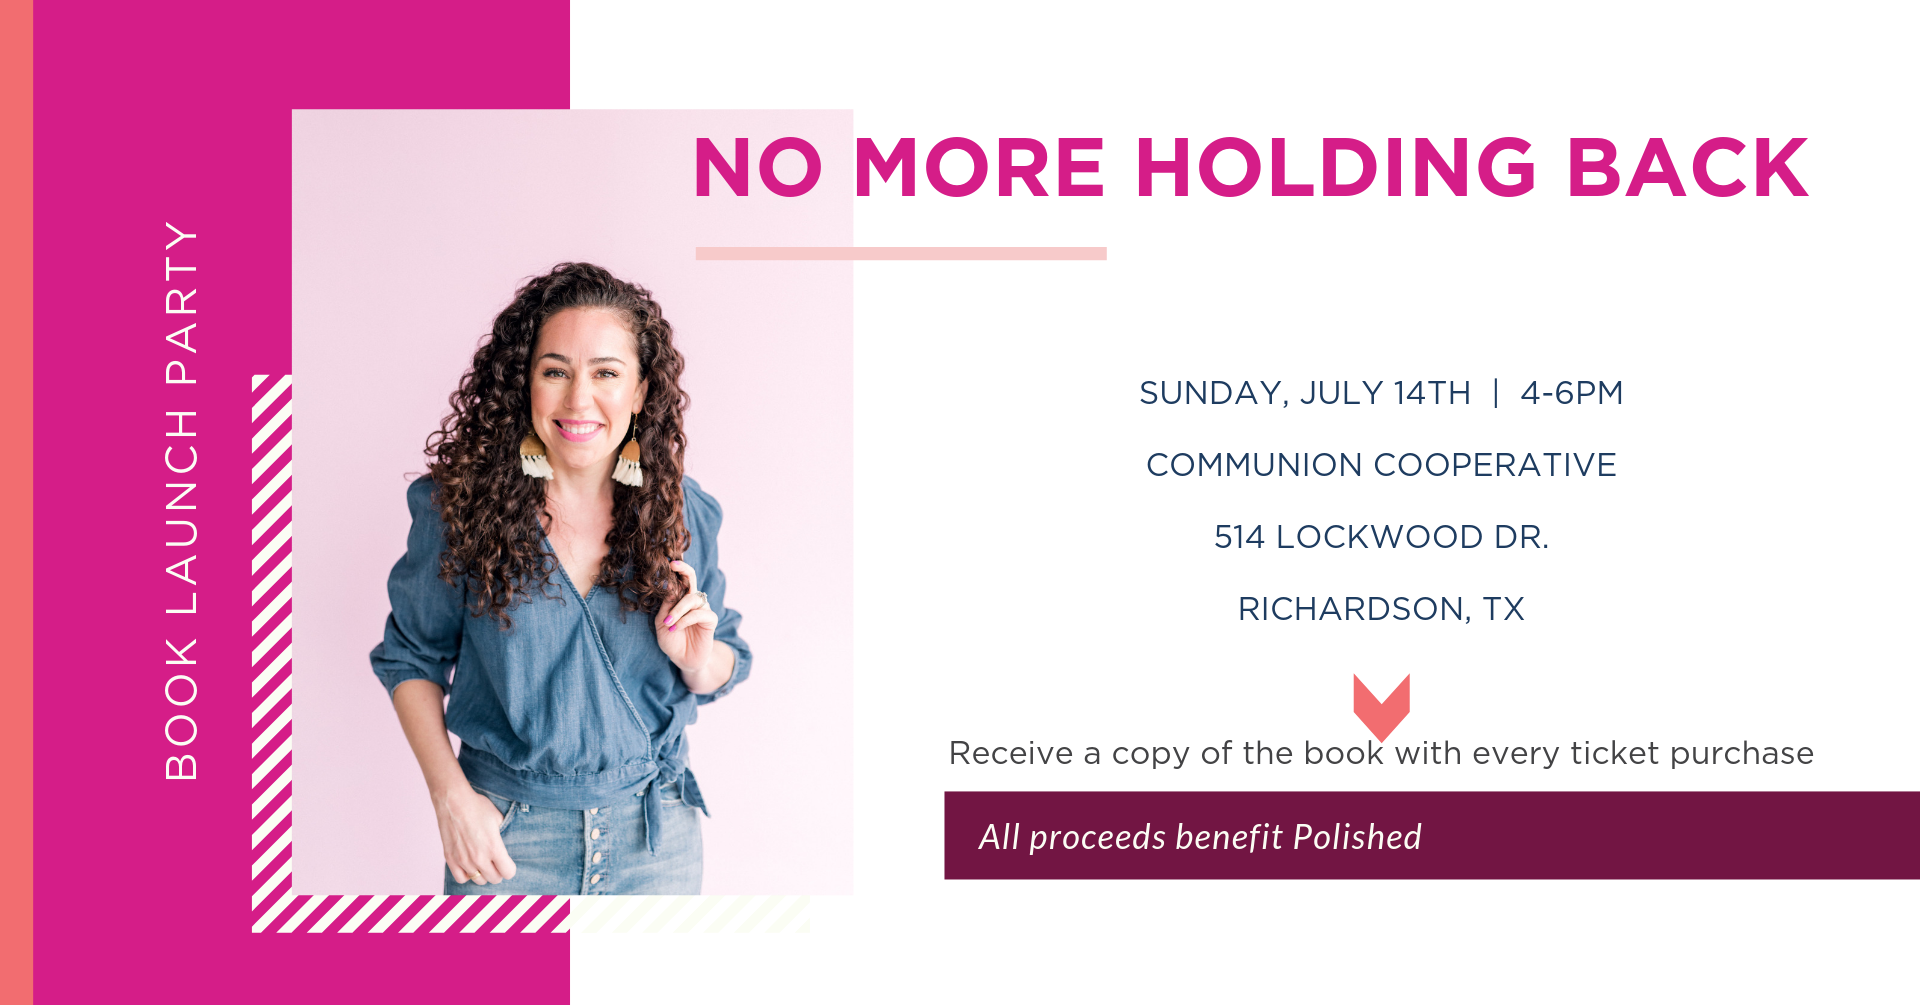 No More Holding Back by Kat Armstrong